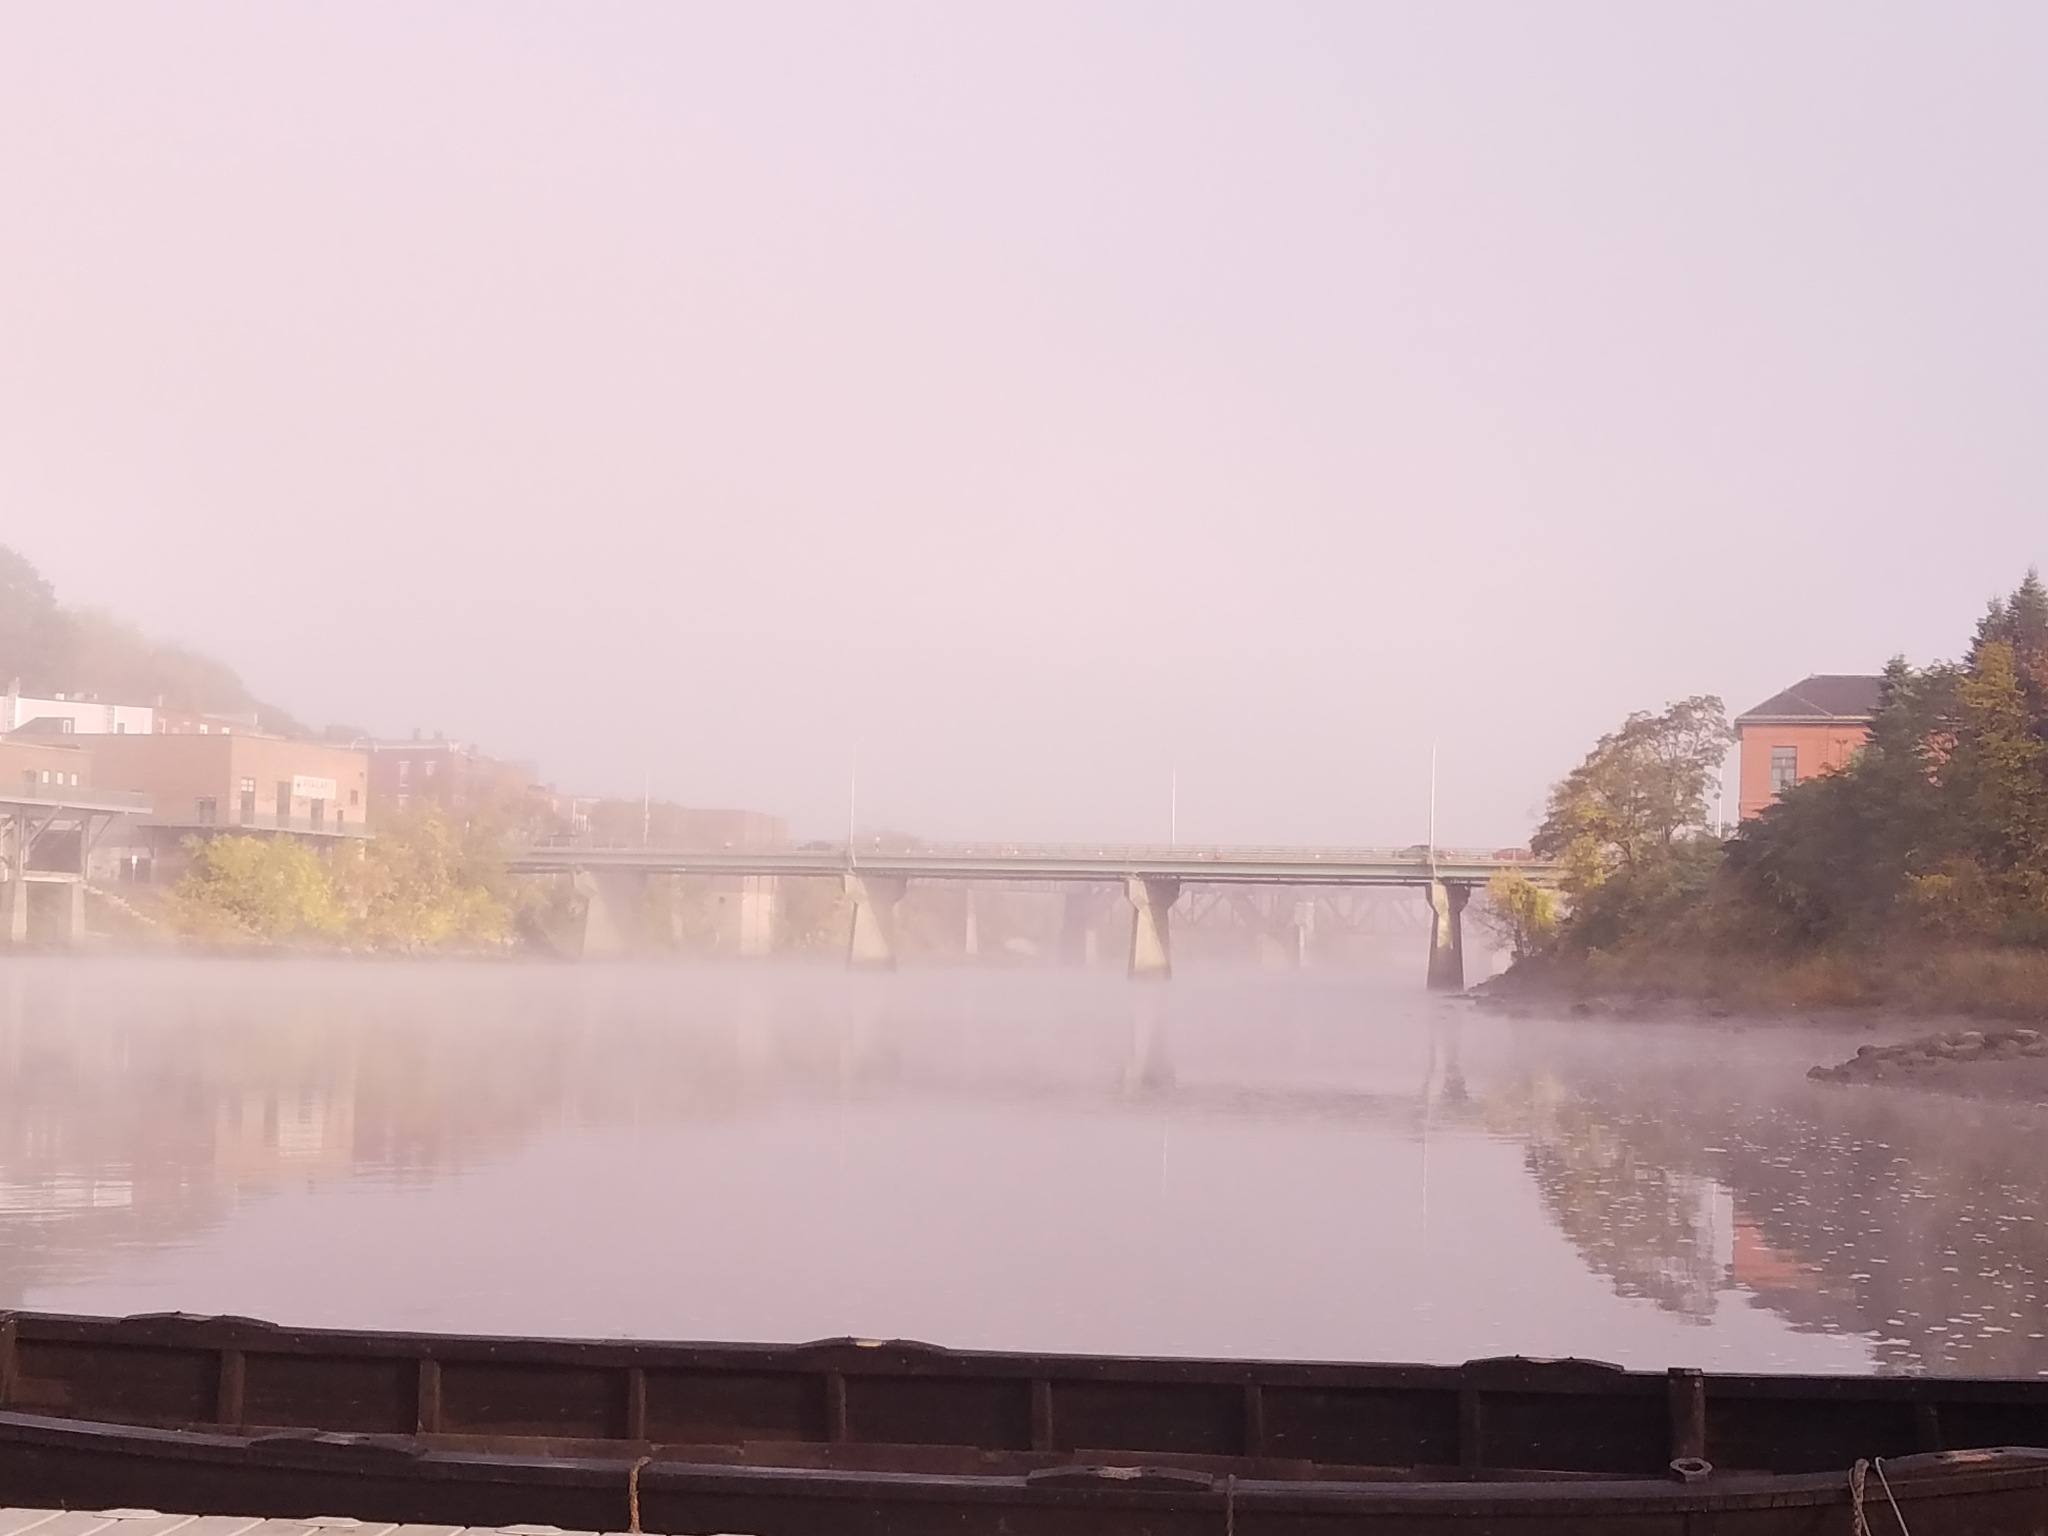 Foggy am river view by Cindy